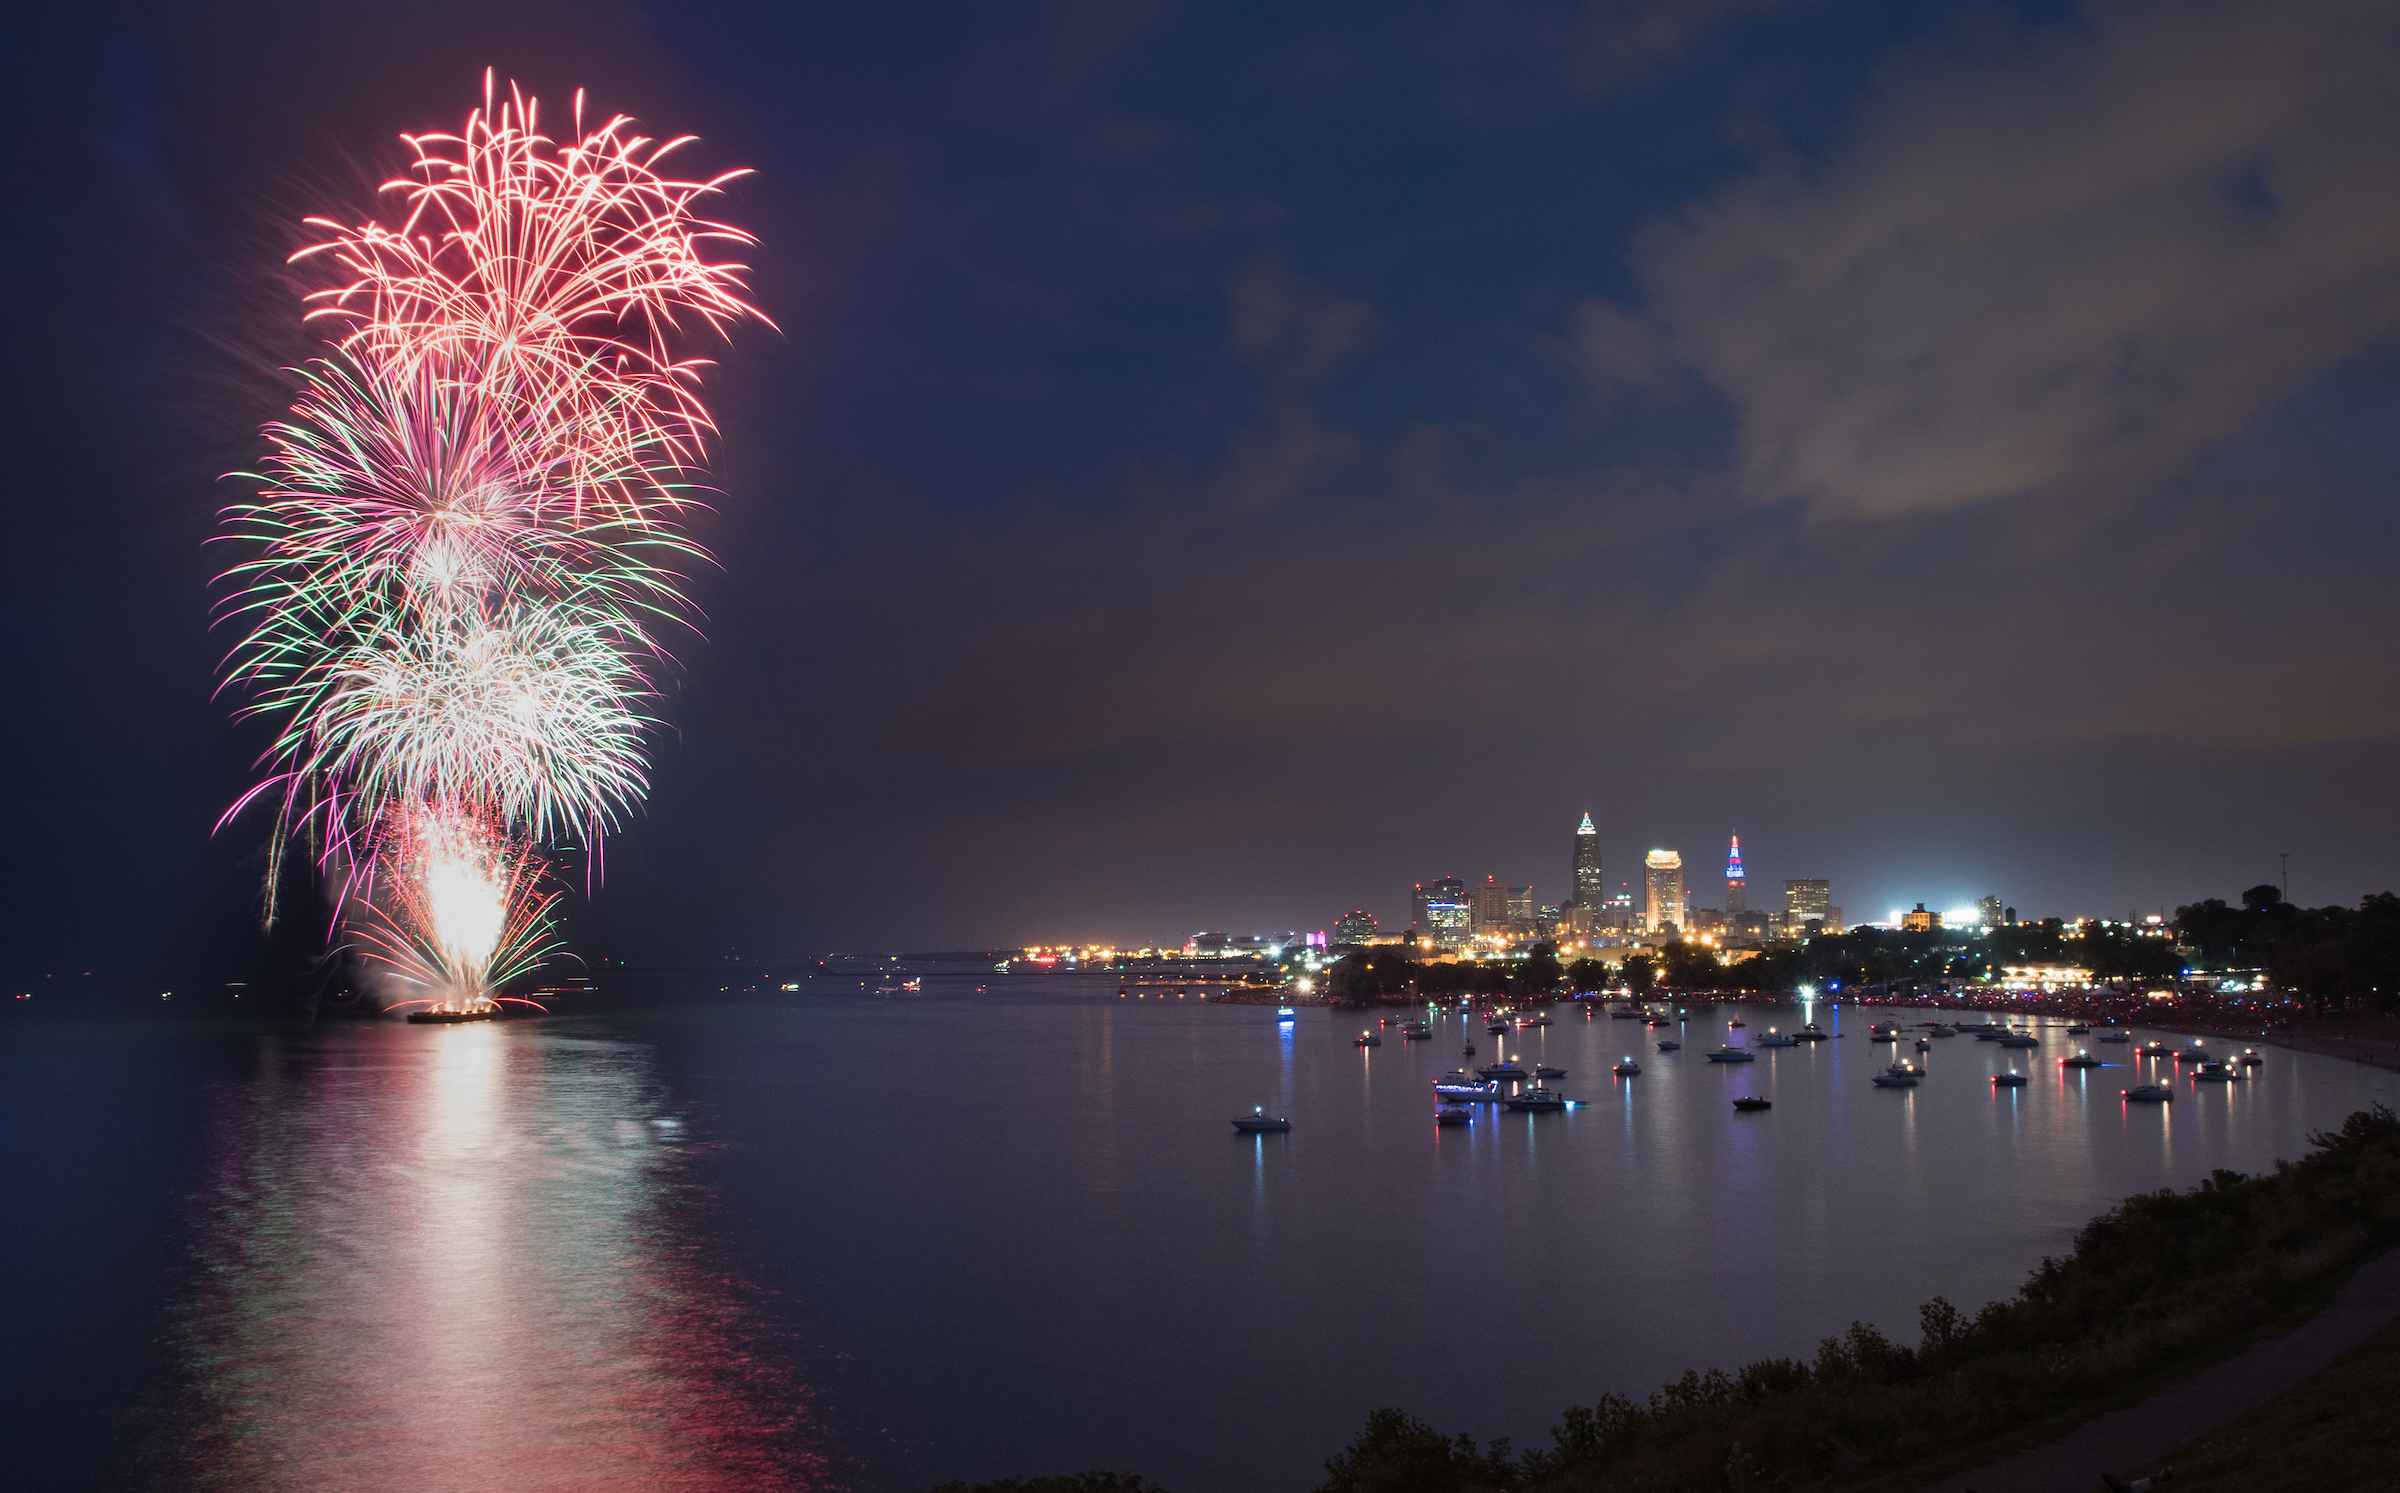 Cleveland Metroparks Safety Tips for the Fourth of July